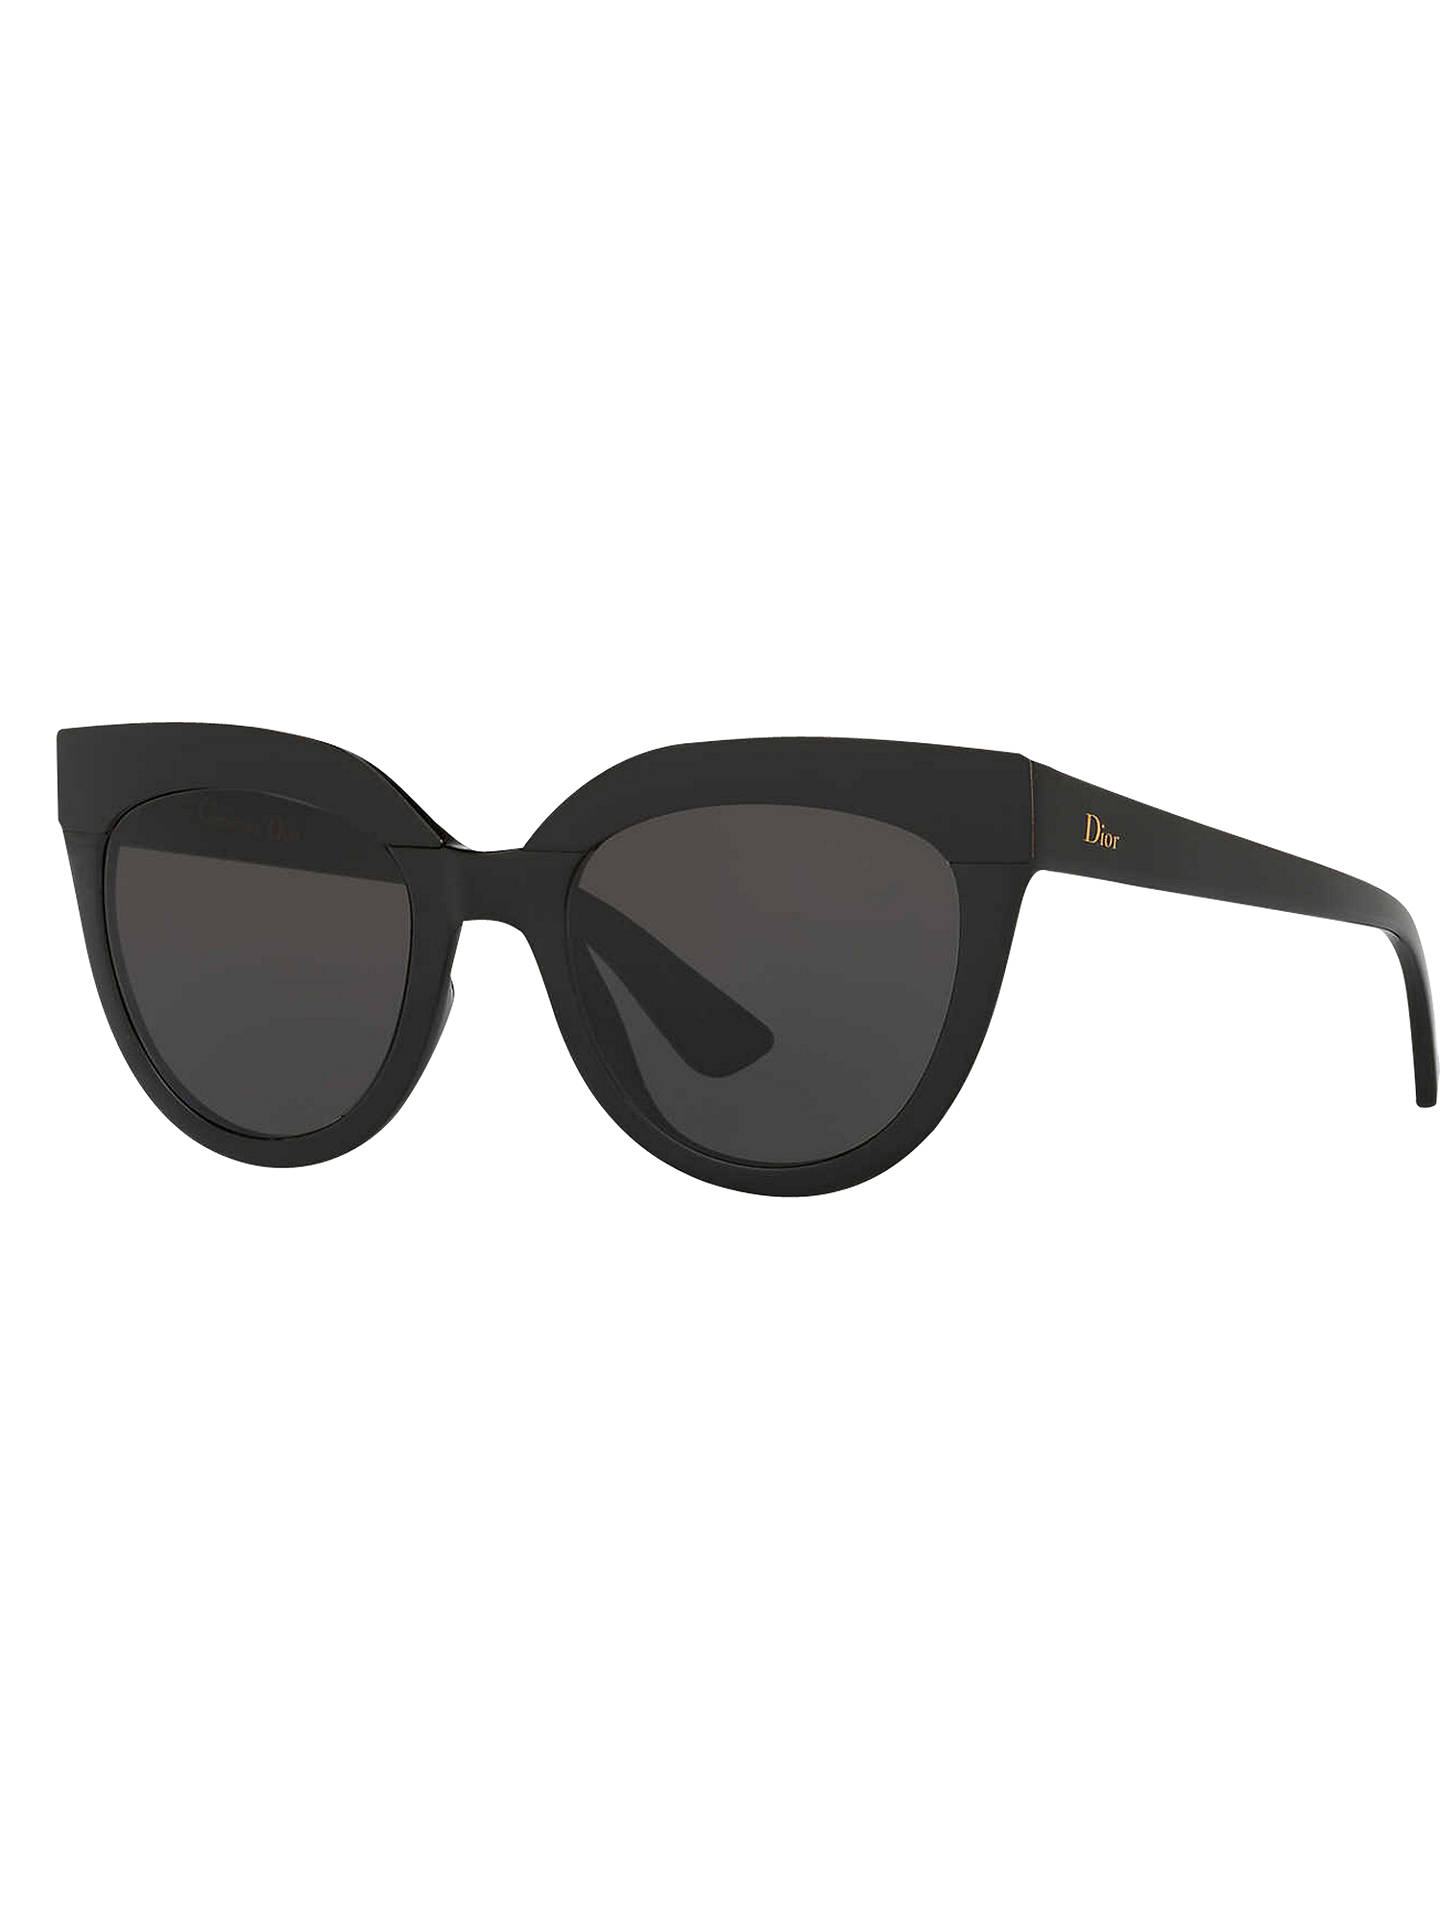 ba45ad45988f Buy Dior DiorSoft1 Cat s Eye Sunglasses